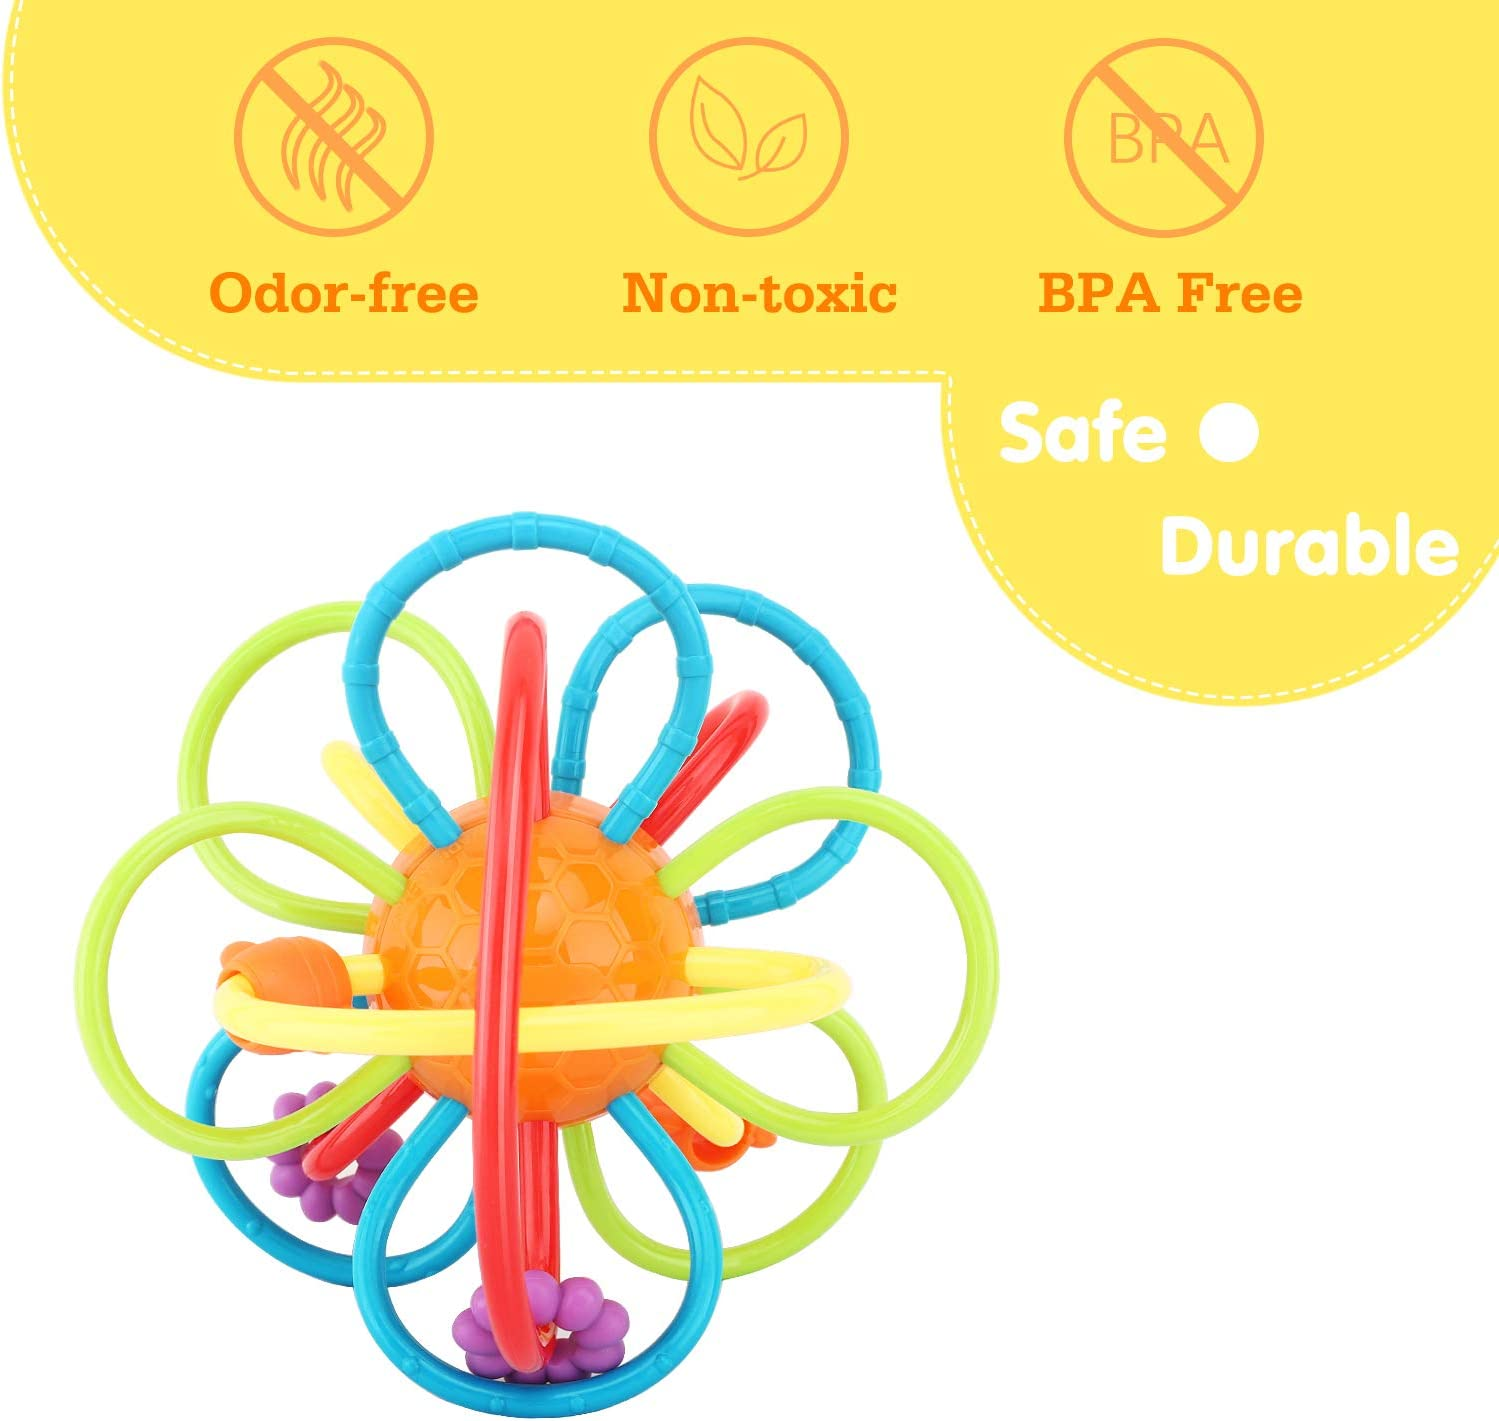 Zooawa Baby Teether Soft Rattle and Sensory Ball Teething Toy for Pain Relief BPA-Free Teether Ball Rattle Toy for Infants and Toddlers Colorful Easy to Hold